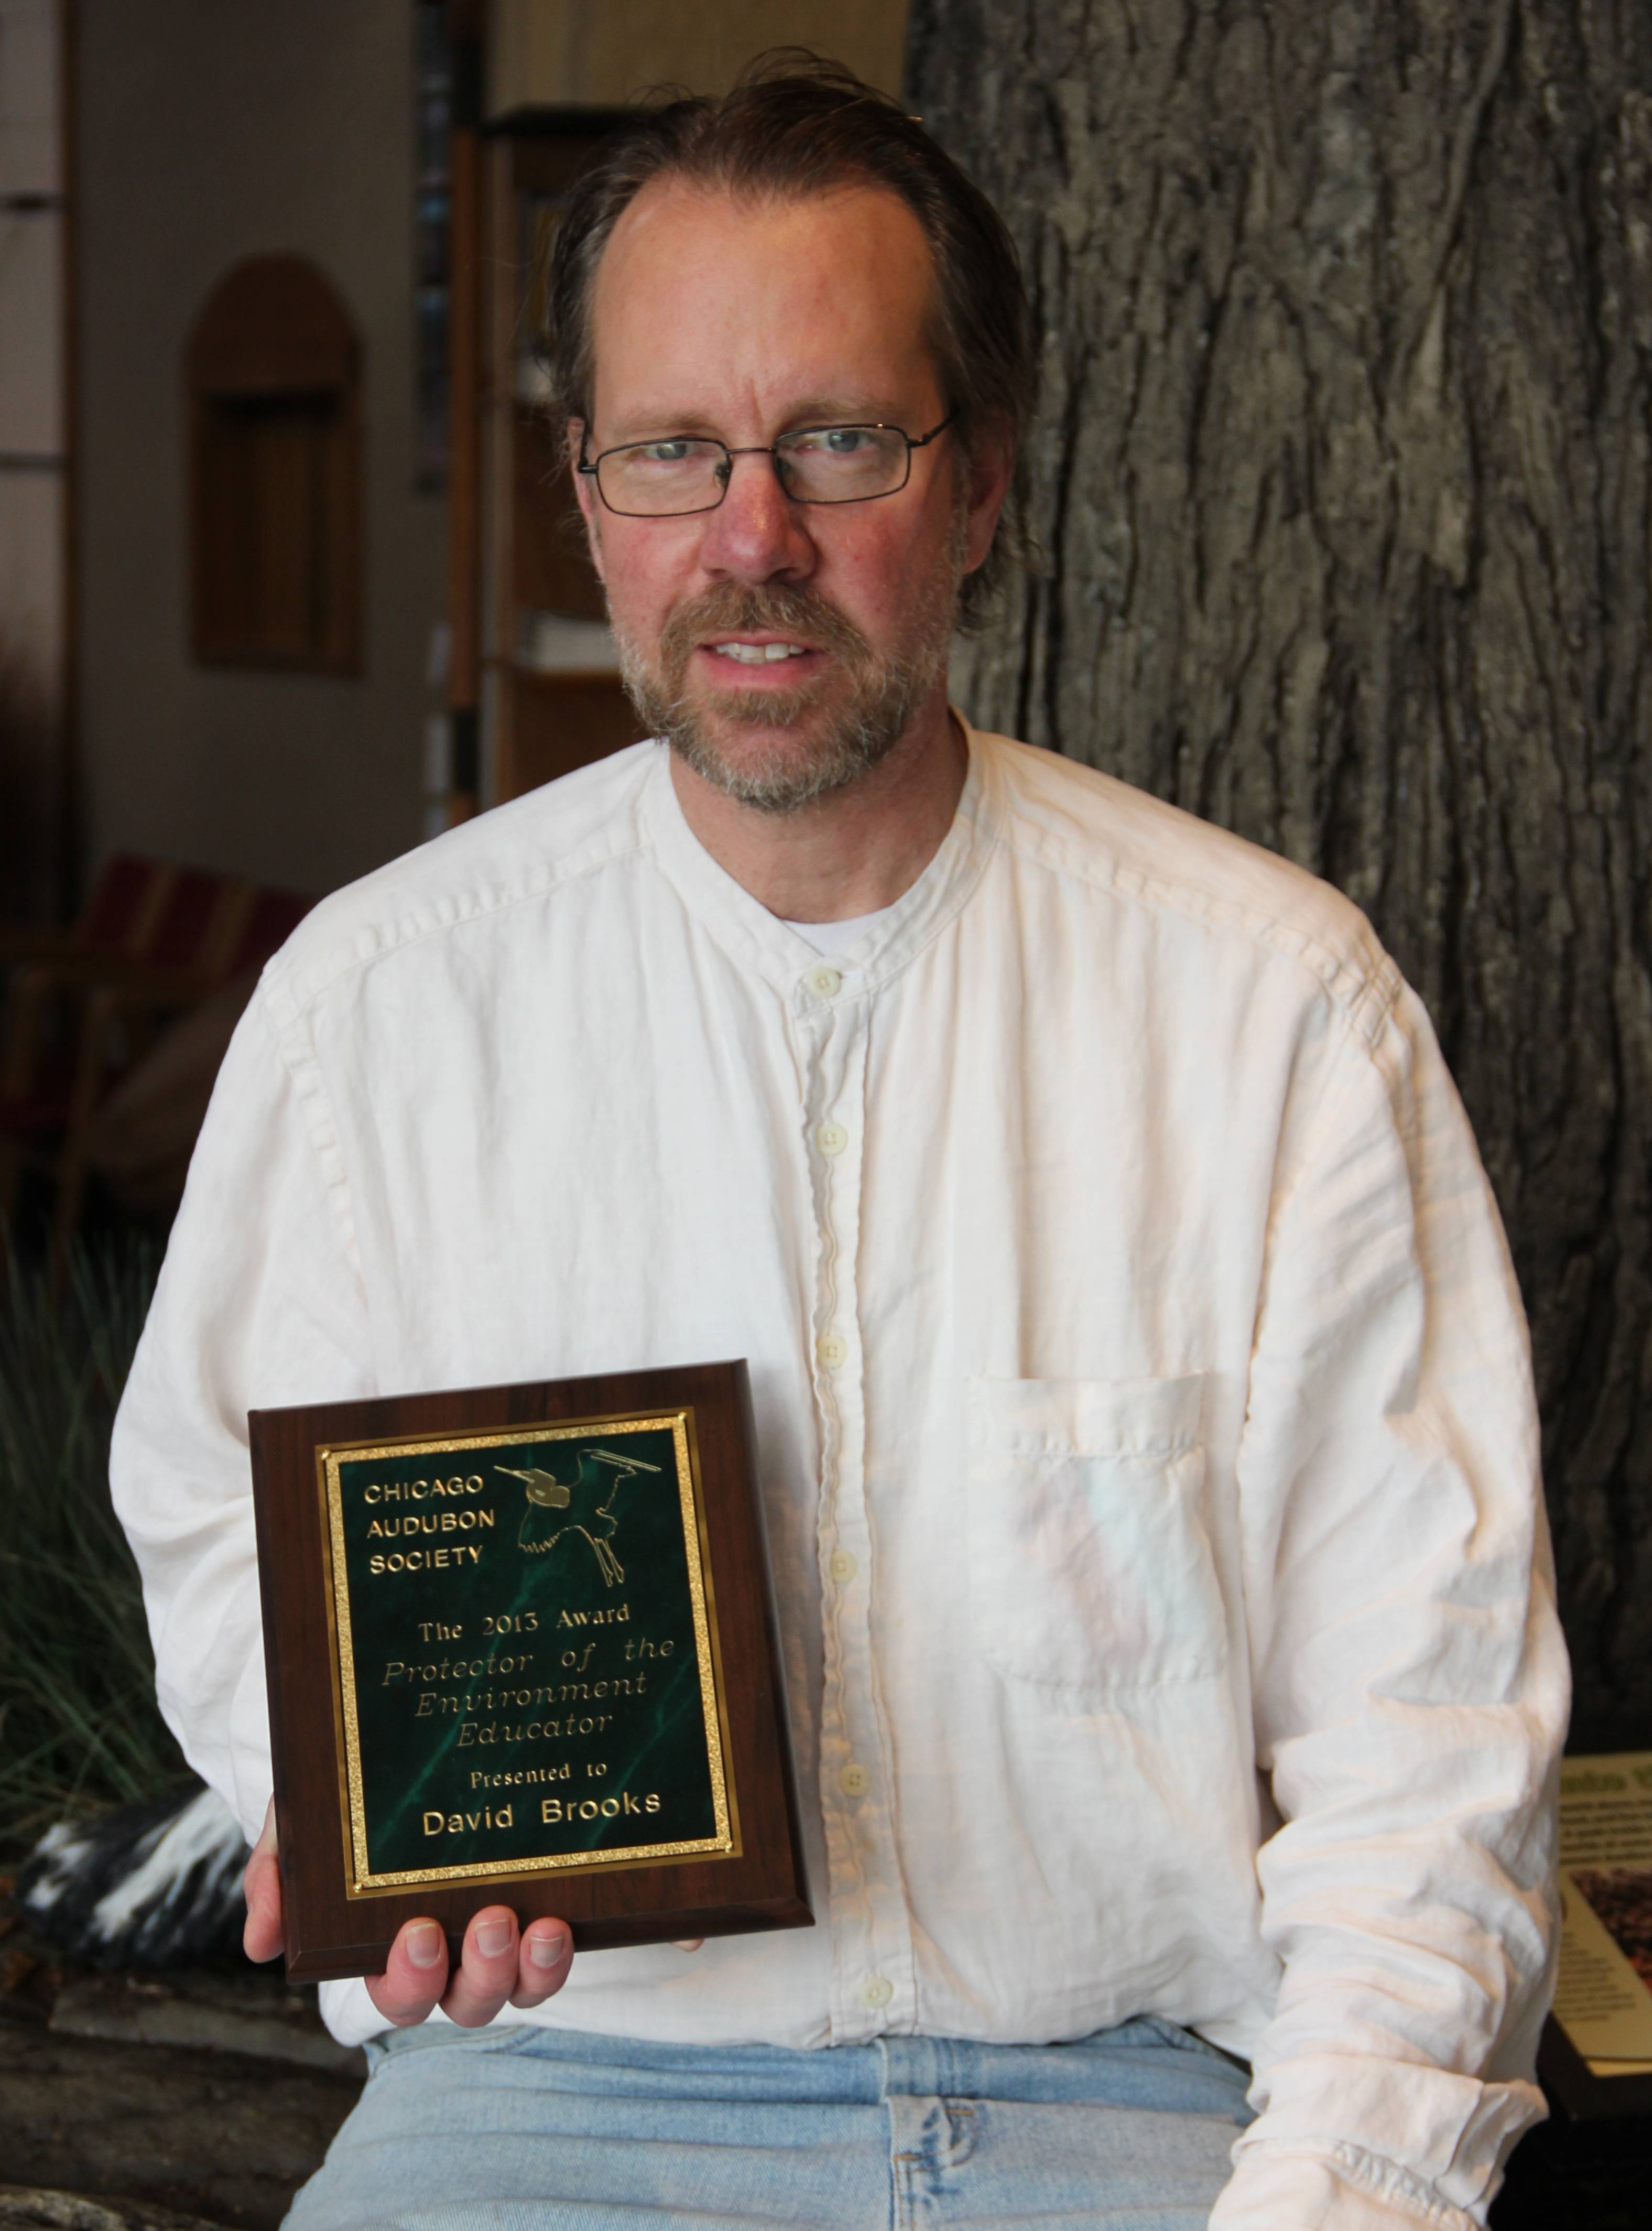 Dave Brooks, manager of conservation services, smiles with his award from the Chicago Audubon Society.